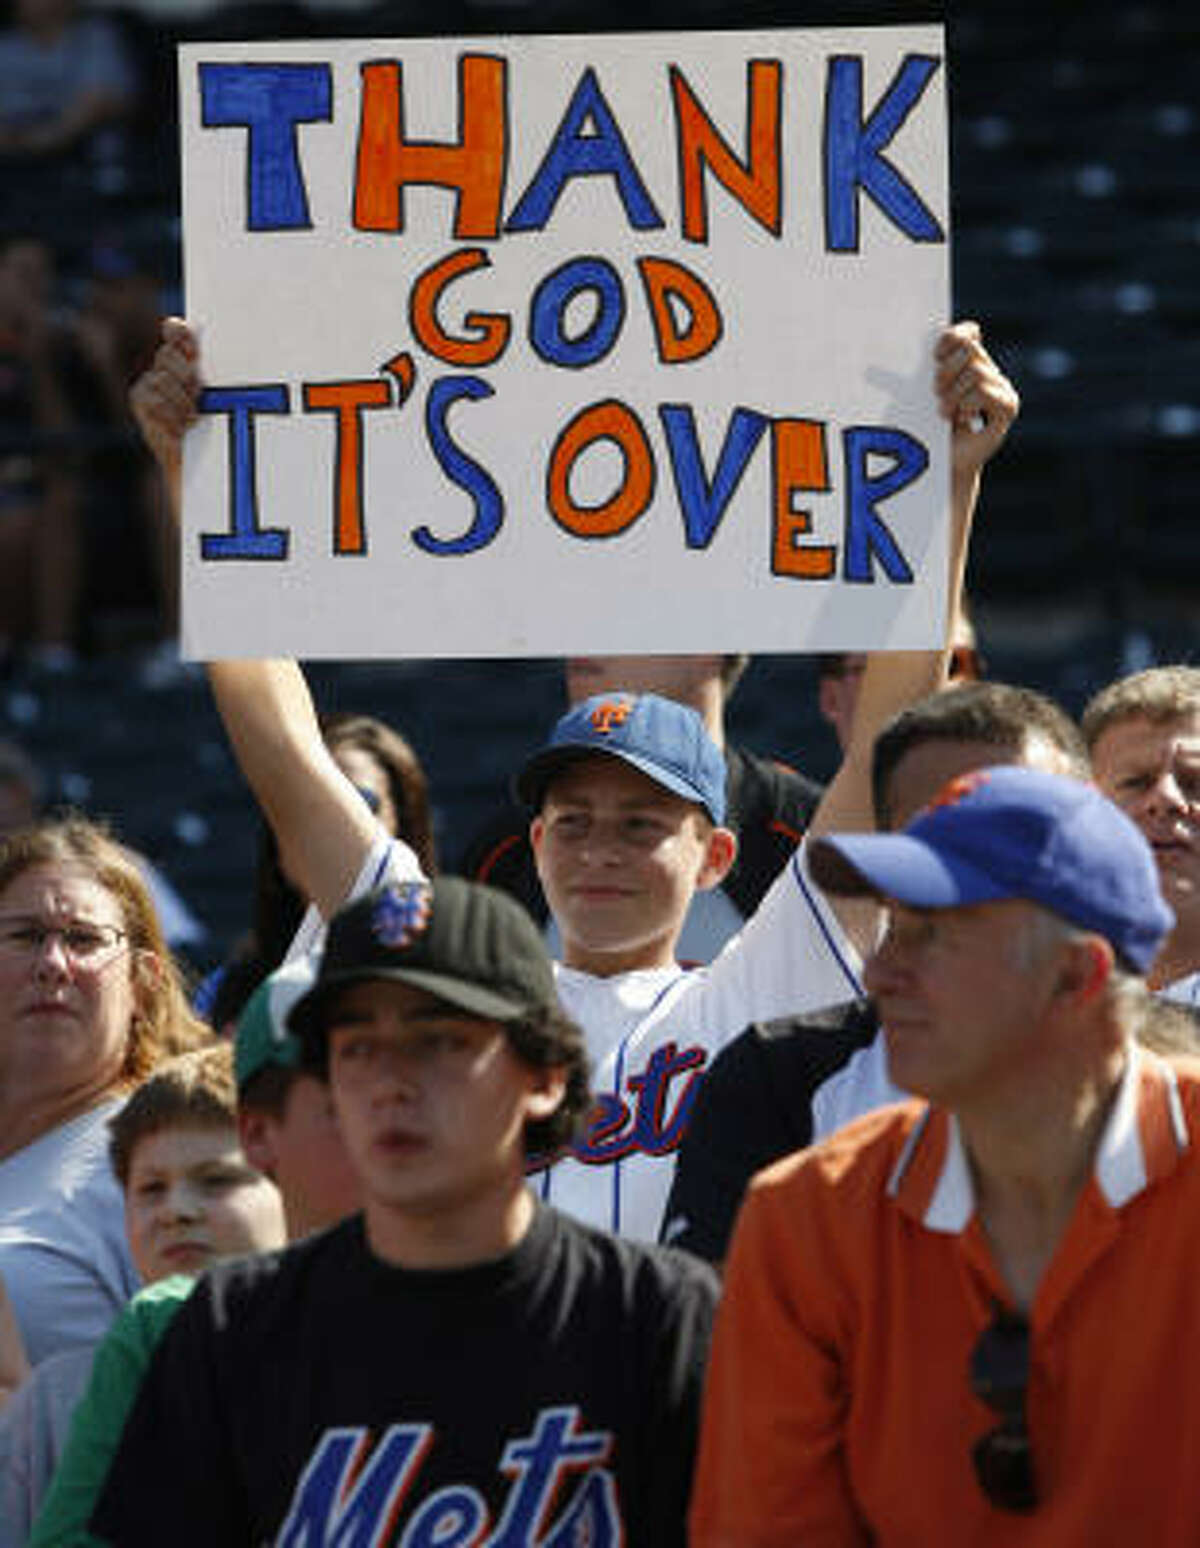 Oct. 4: Mets 4, Astros 0 A young Mets fan feels expresses sentiments similar to several Astros fans.